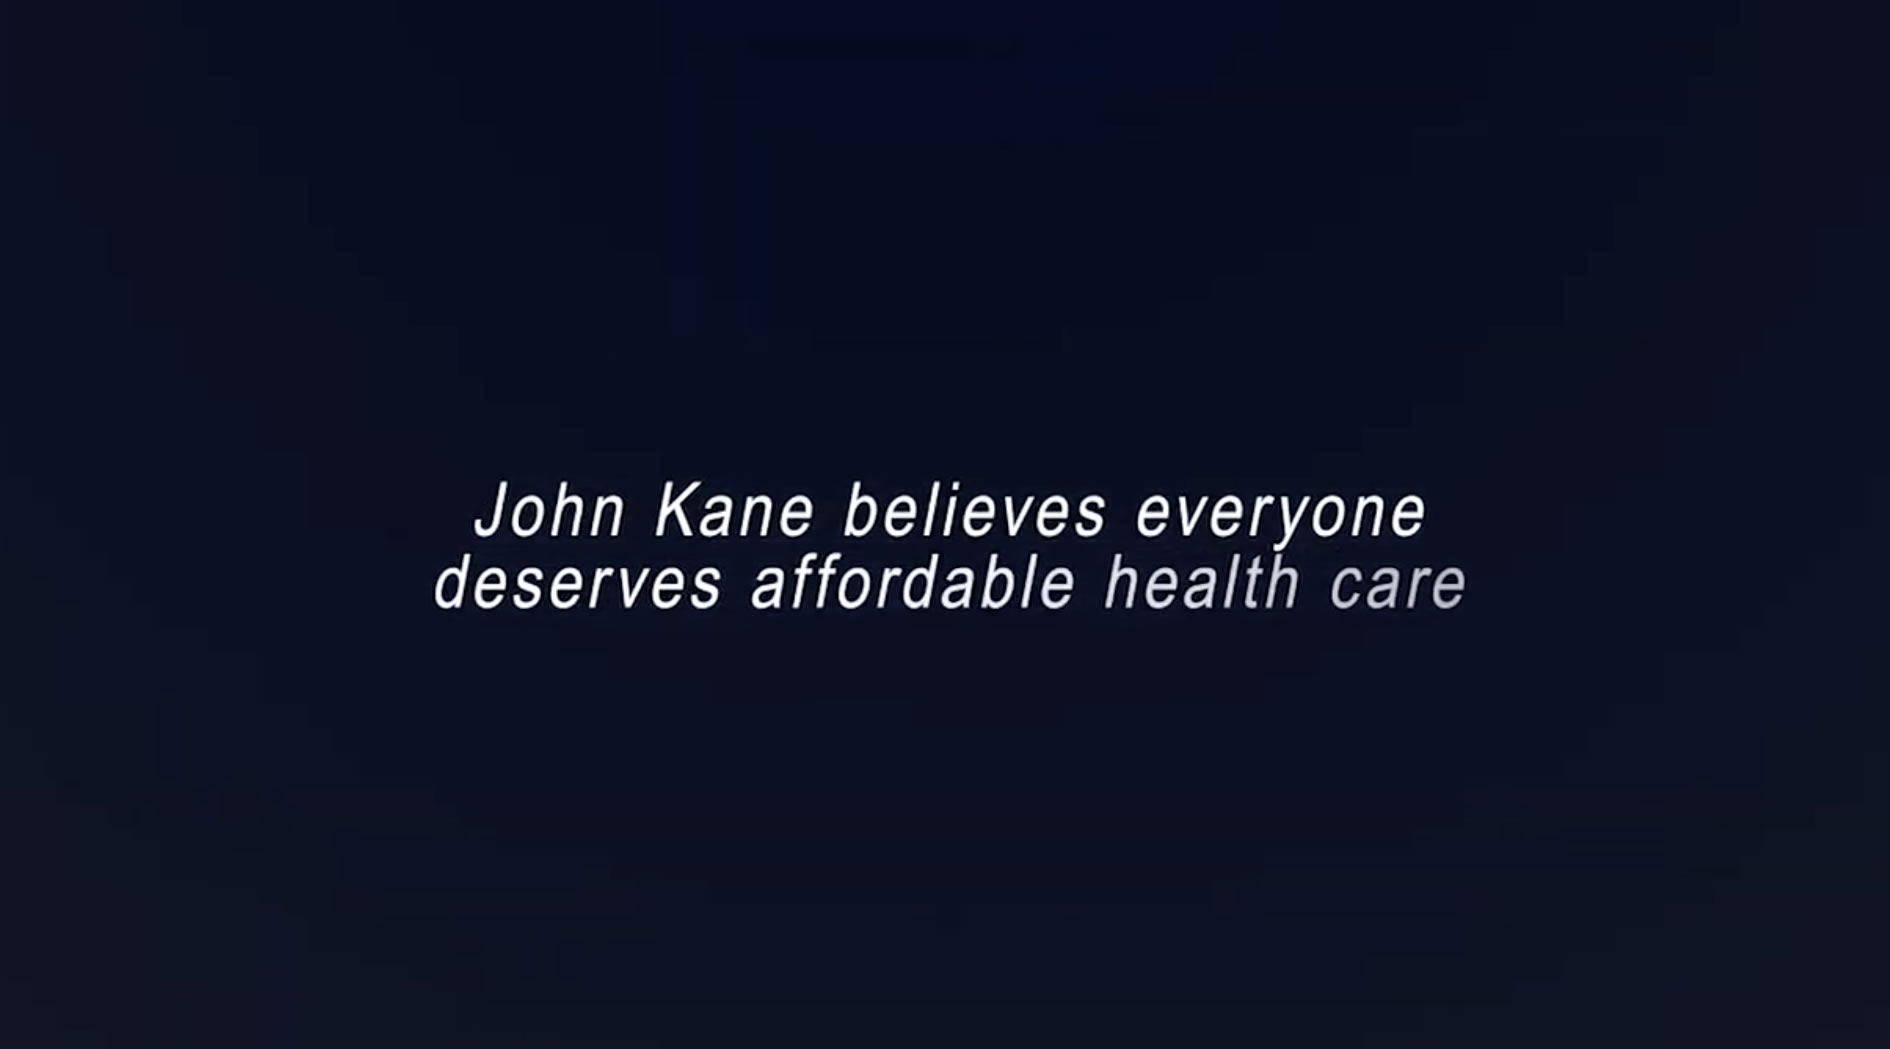 John Kane on Health Care - Affordable Health Care